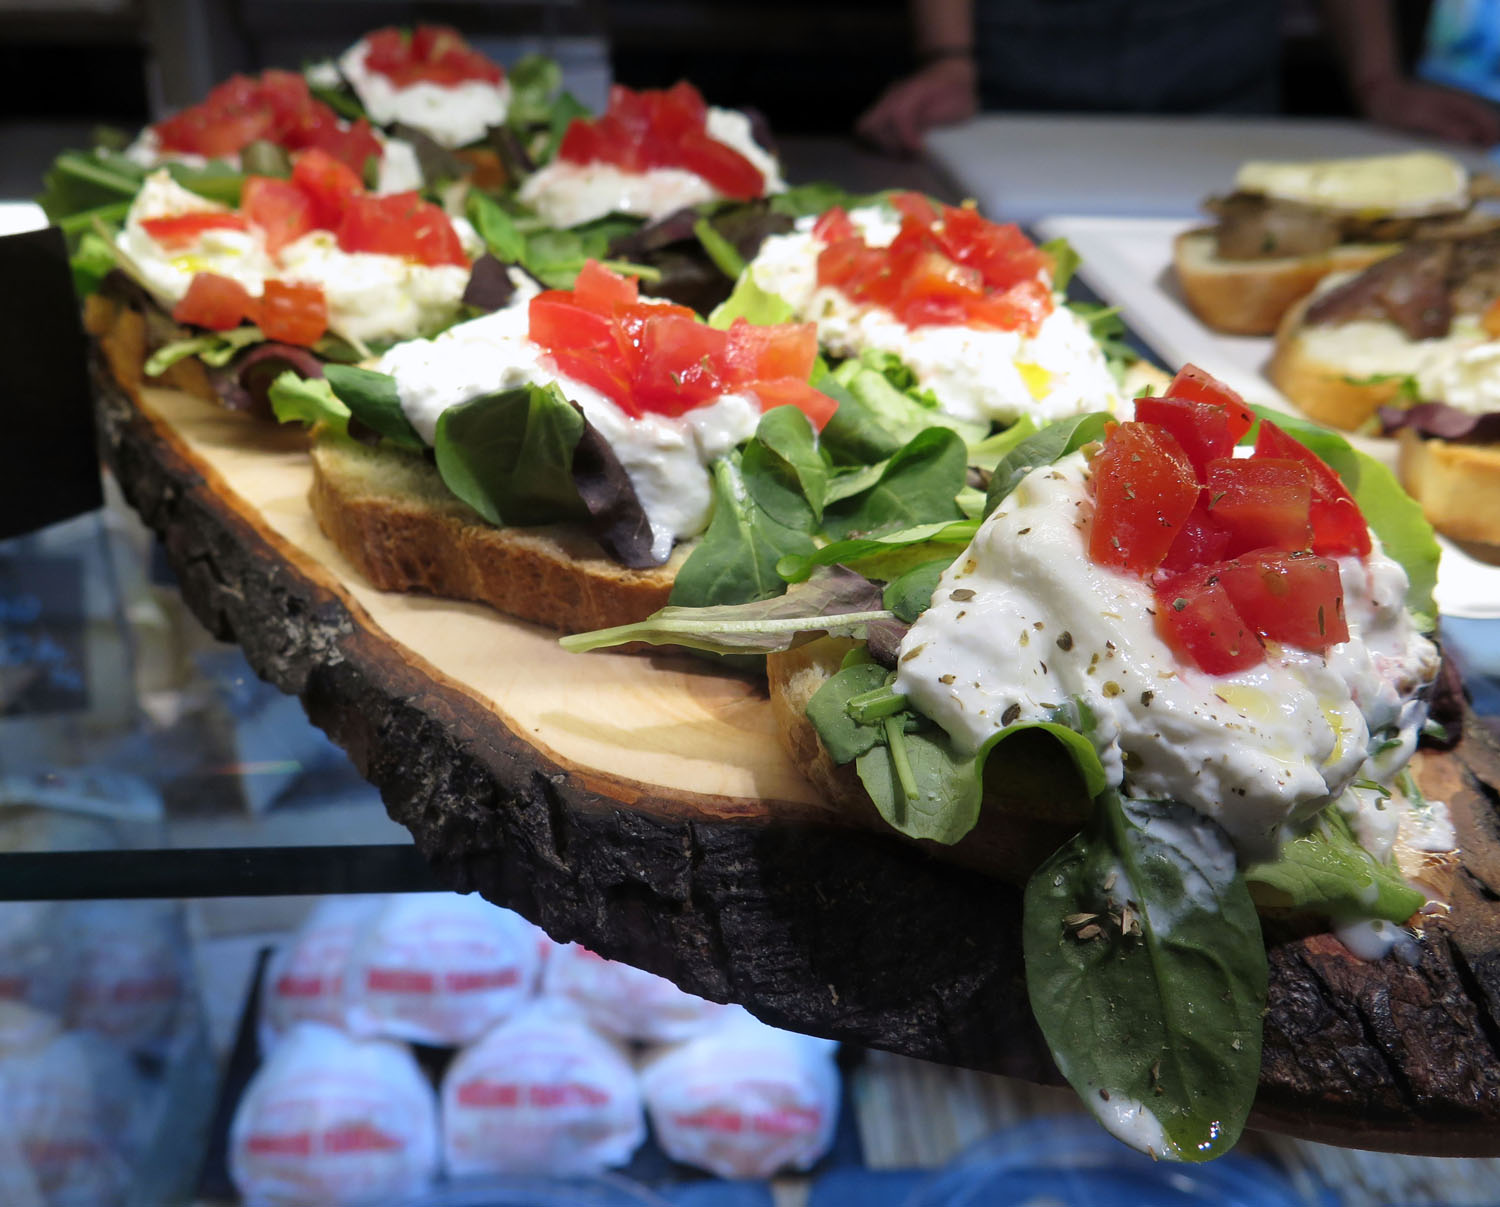 Italy-Florence-Food-And-Drink-Bruschetta